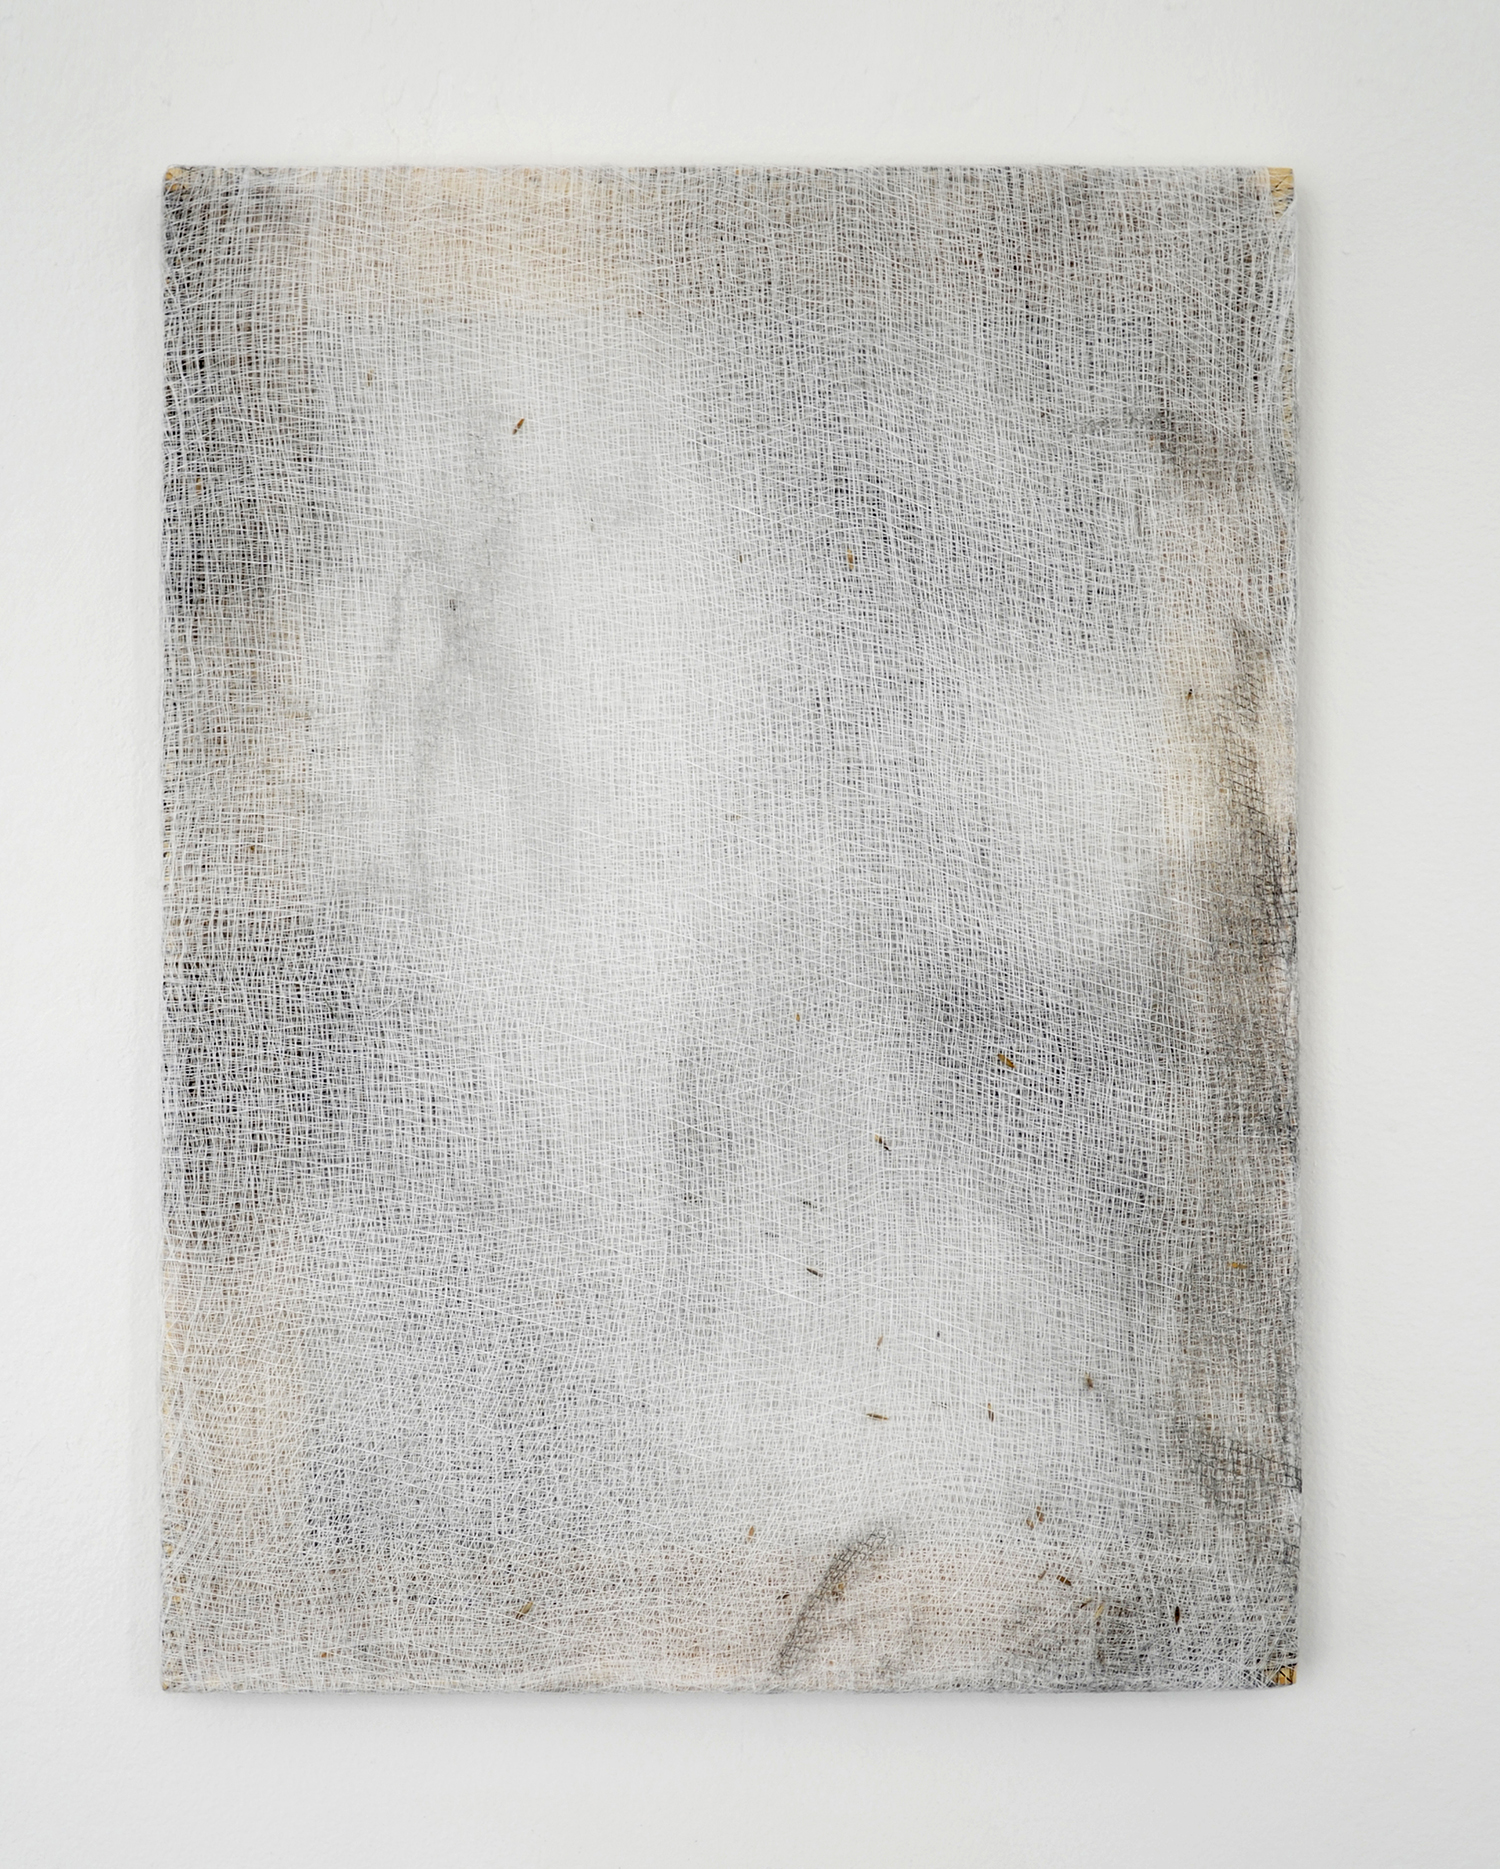 """Alessandro Moroder """"And There They Seemed. Bathed In Silence. All Alone,� 2019 (enamel and dirt on cheese cloth, 40x30cm)."""